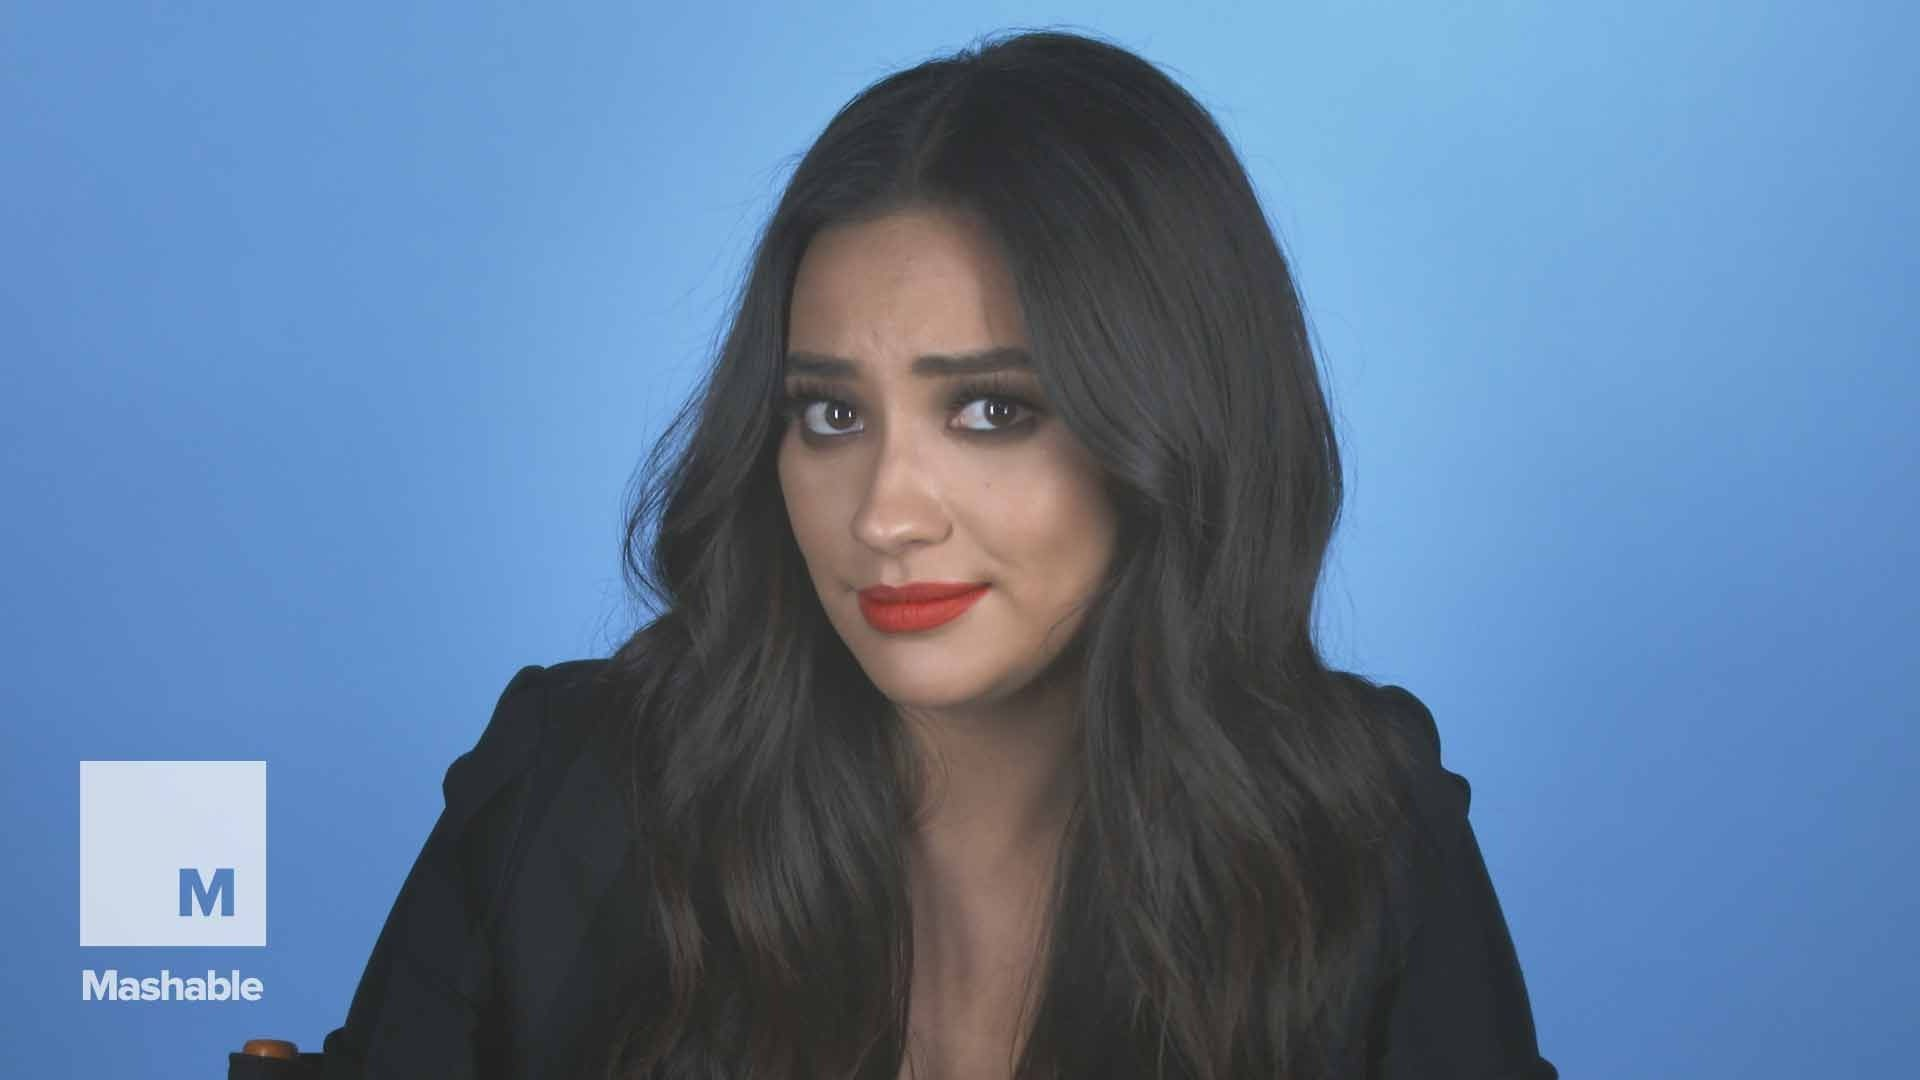 Shay Mitchell has some crucial social media survival tips for moms